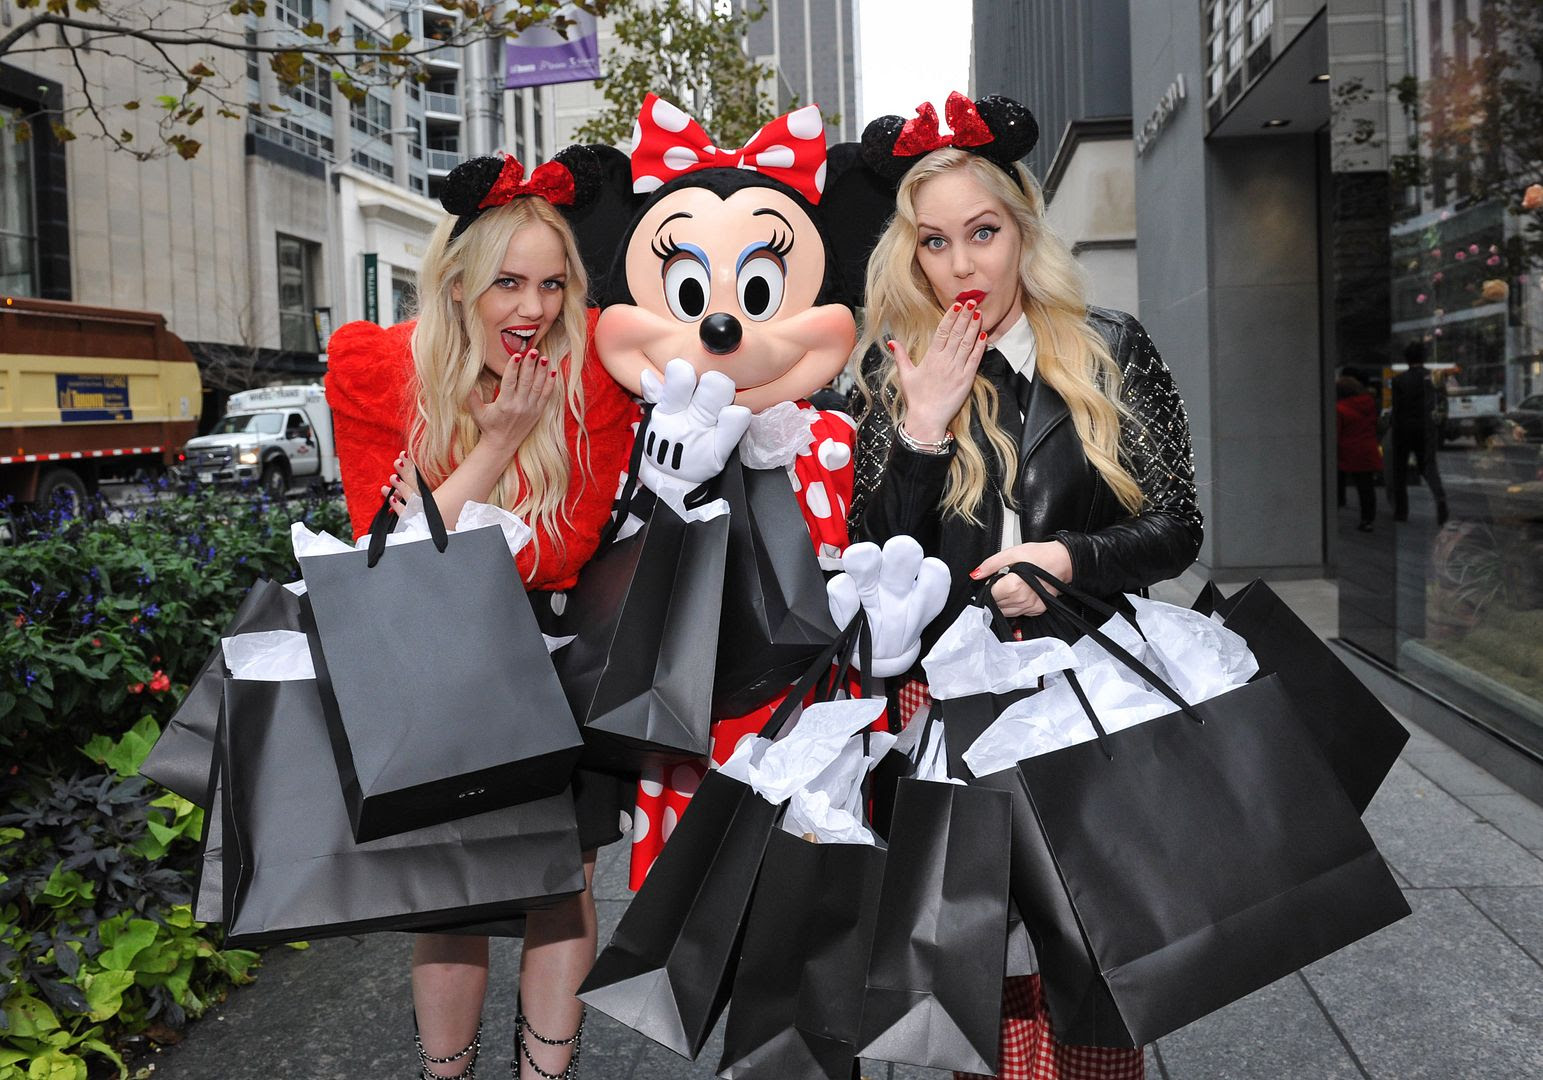 photo minniestyle-minniemouse-disney-beckermanblog-cailliandsambeckerman-disney-worldmastercardfashionweek-toronto-11_zps27427dbd.jpg